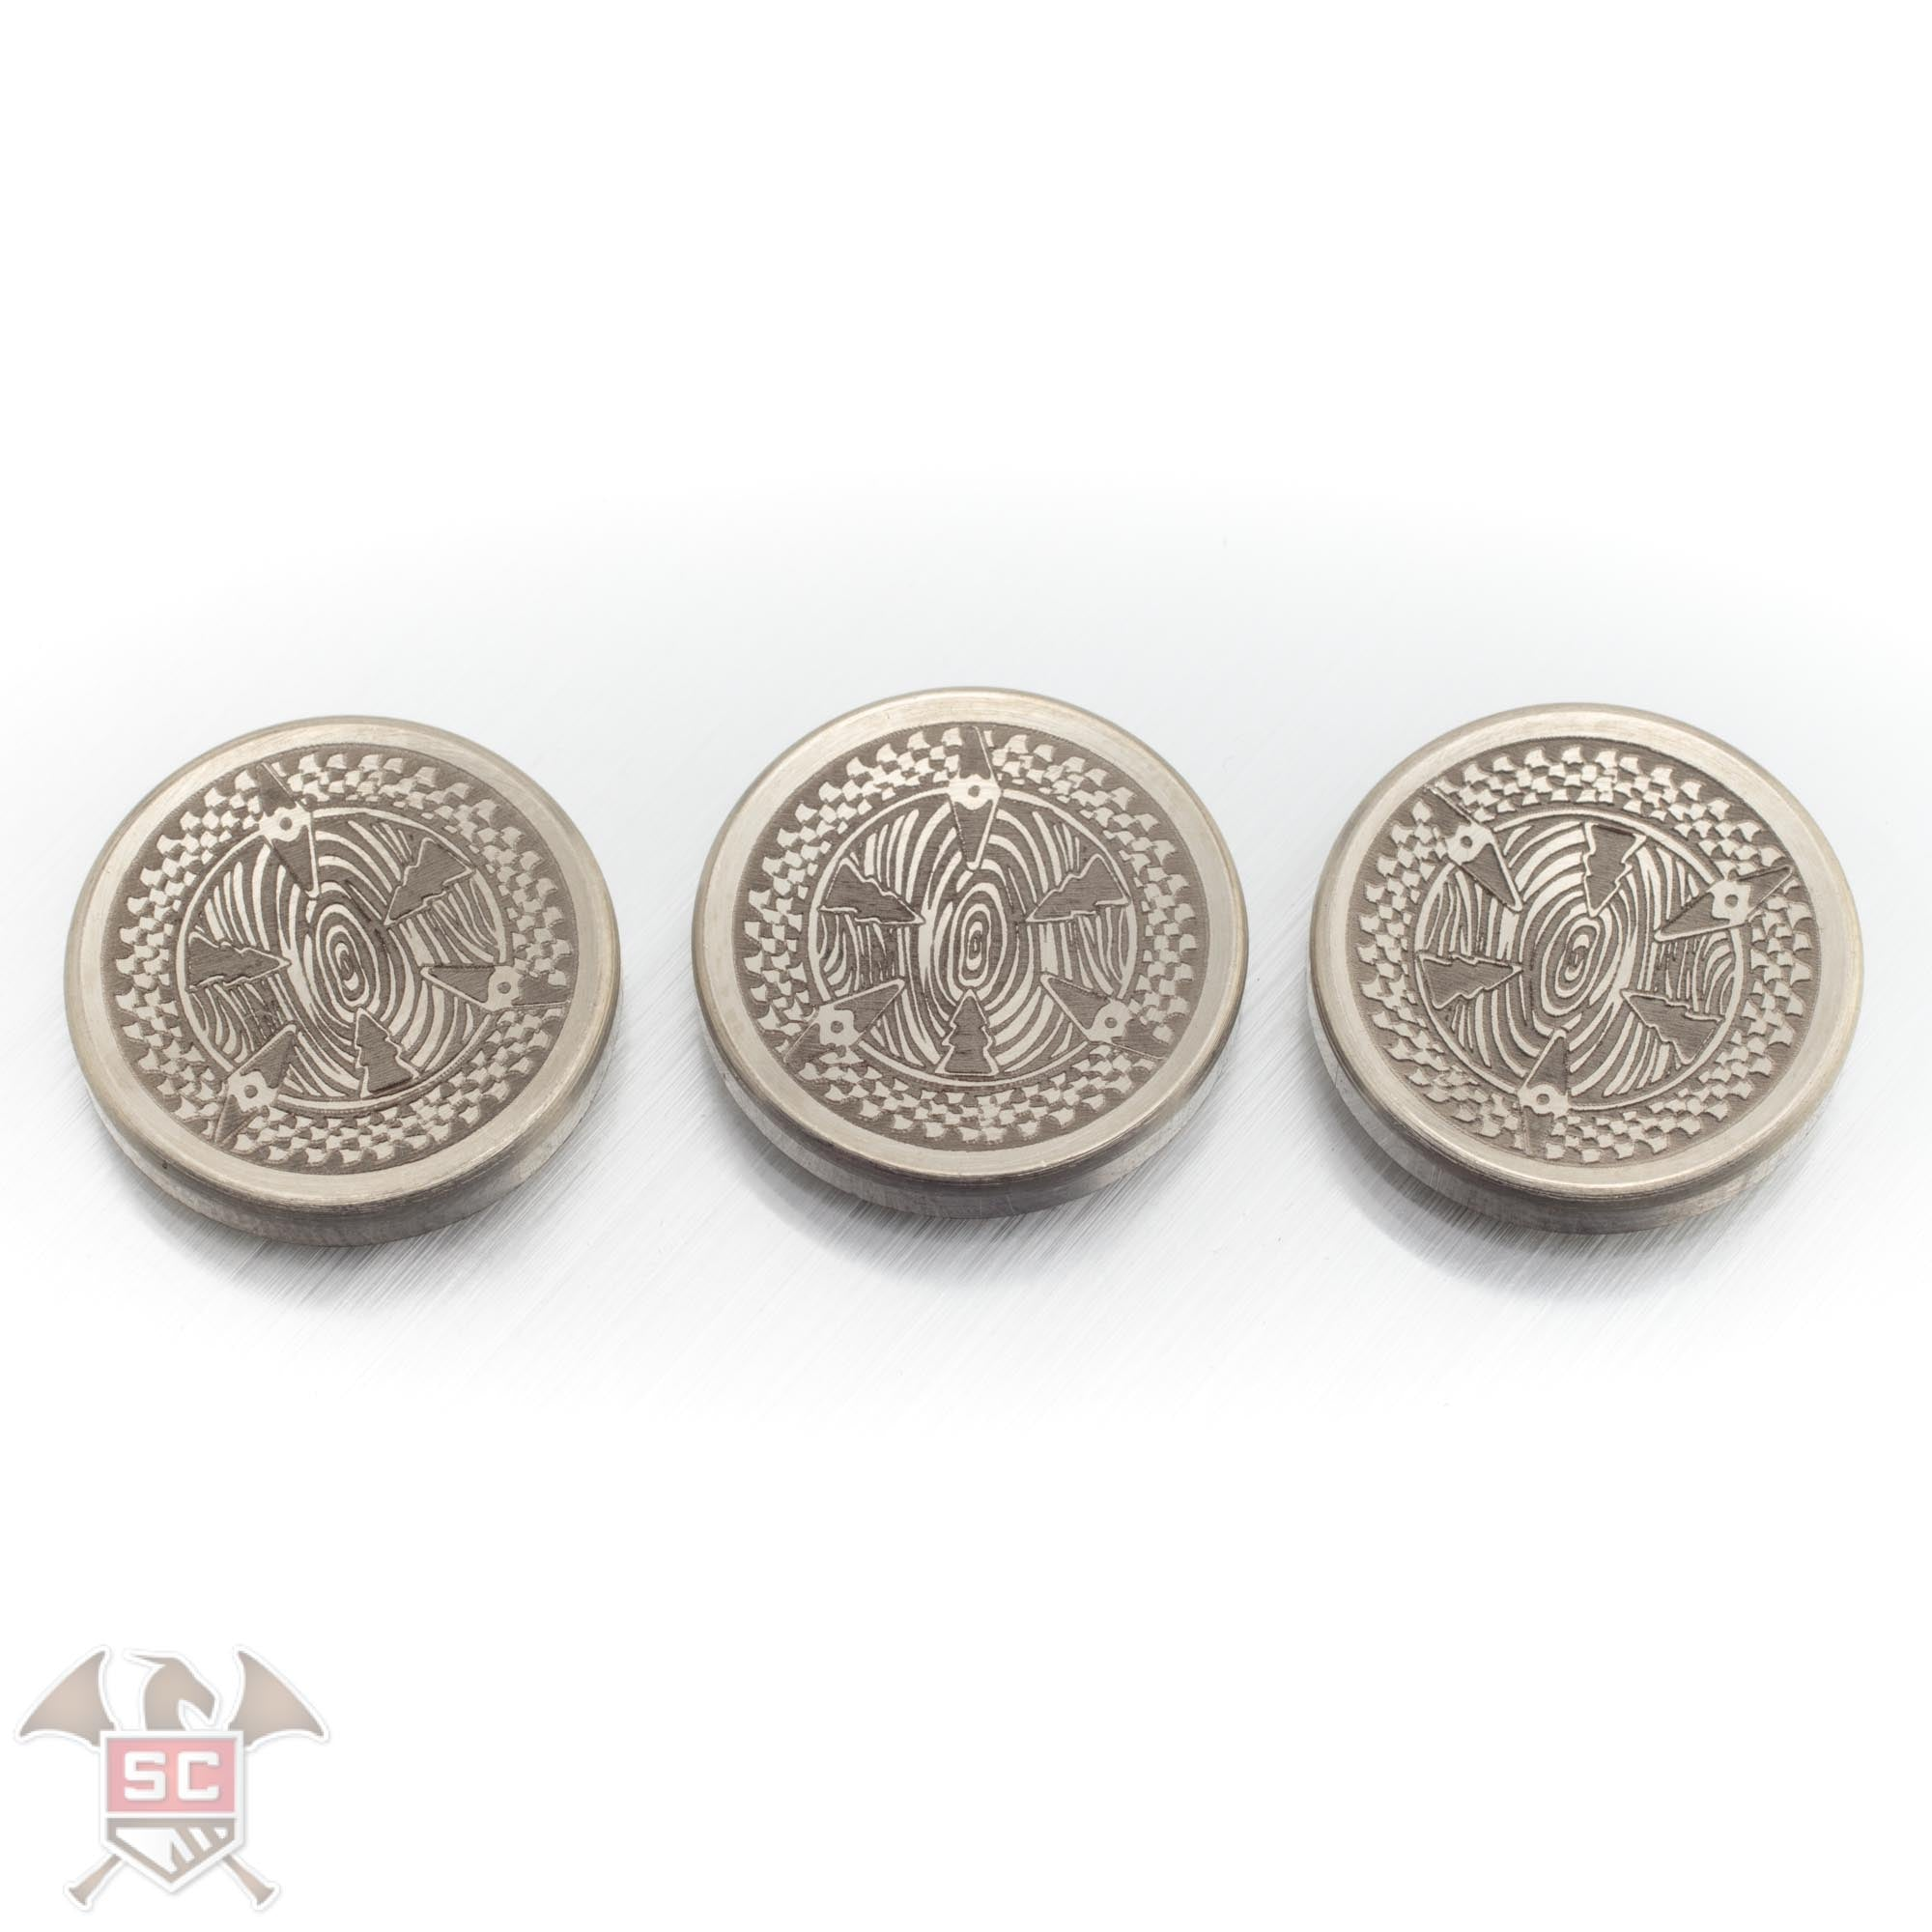 Siegfried's Call Custom Engraved Concave Finger Buttons